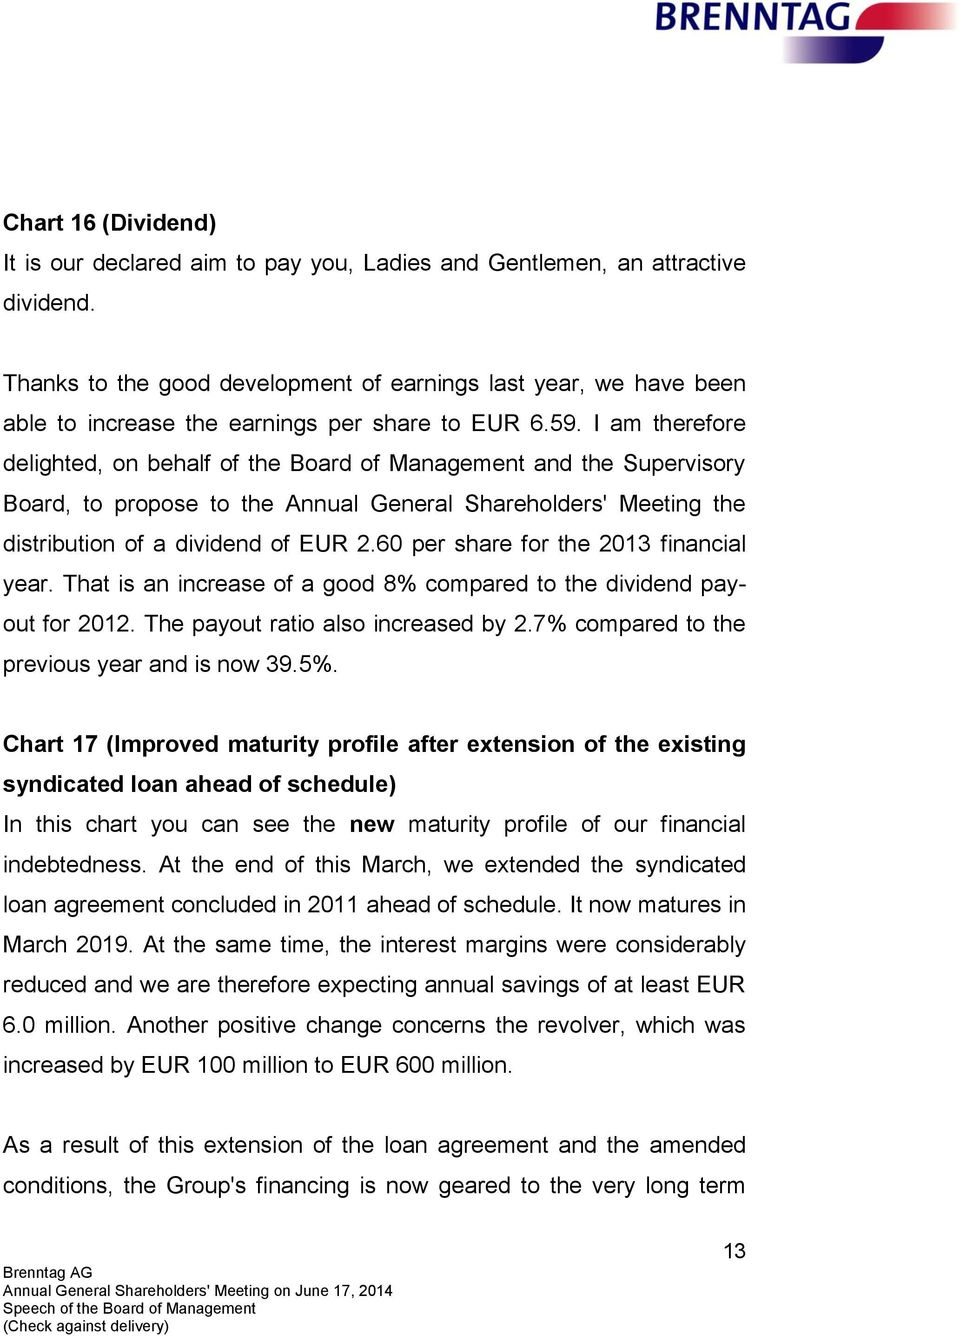 I am therefore delighted, on behalf of the Board of Management and the Supervisory Board, to propose to the Annual General Shareholders' Meeting the distribution of a dividend of EUR 2.